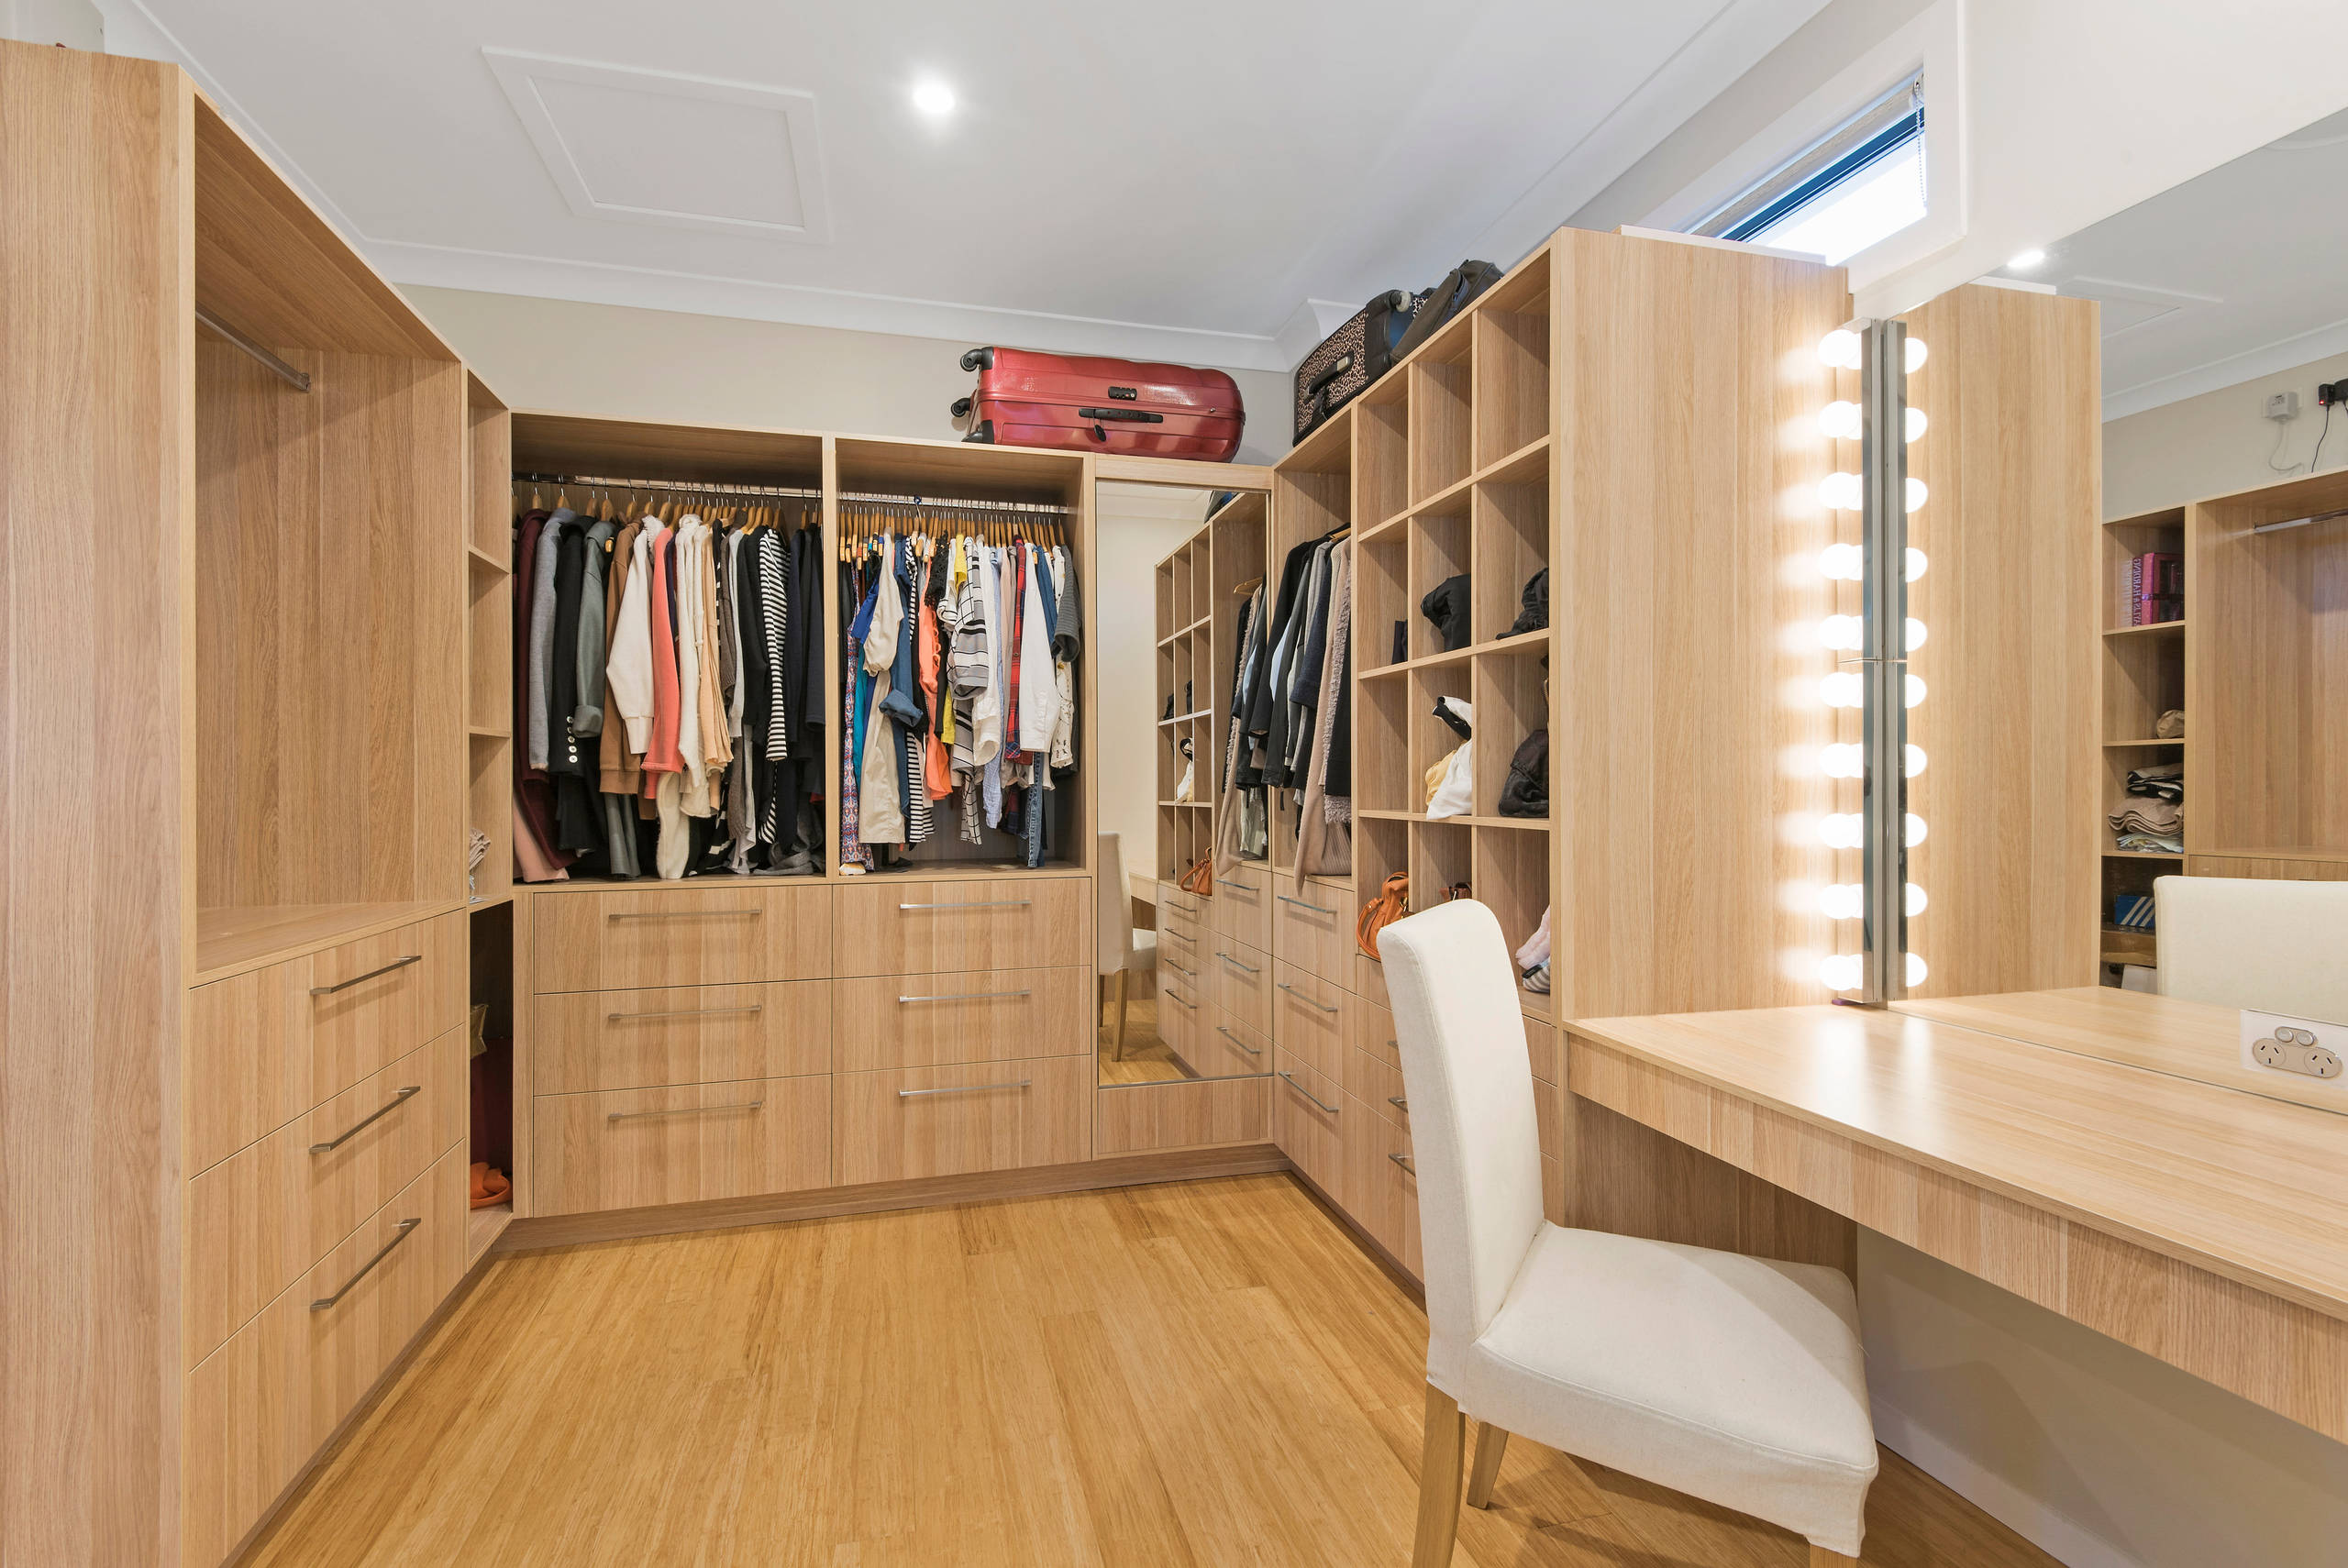 Ankleidezimmer Cabinet 75 Beautiful Bamboo Floor Walk In Closet Pictures Ideas